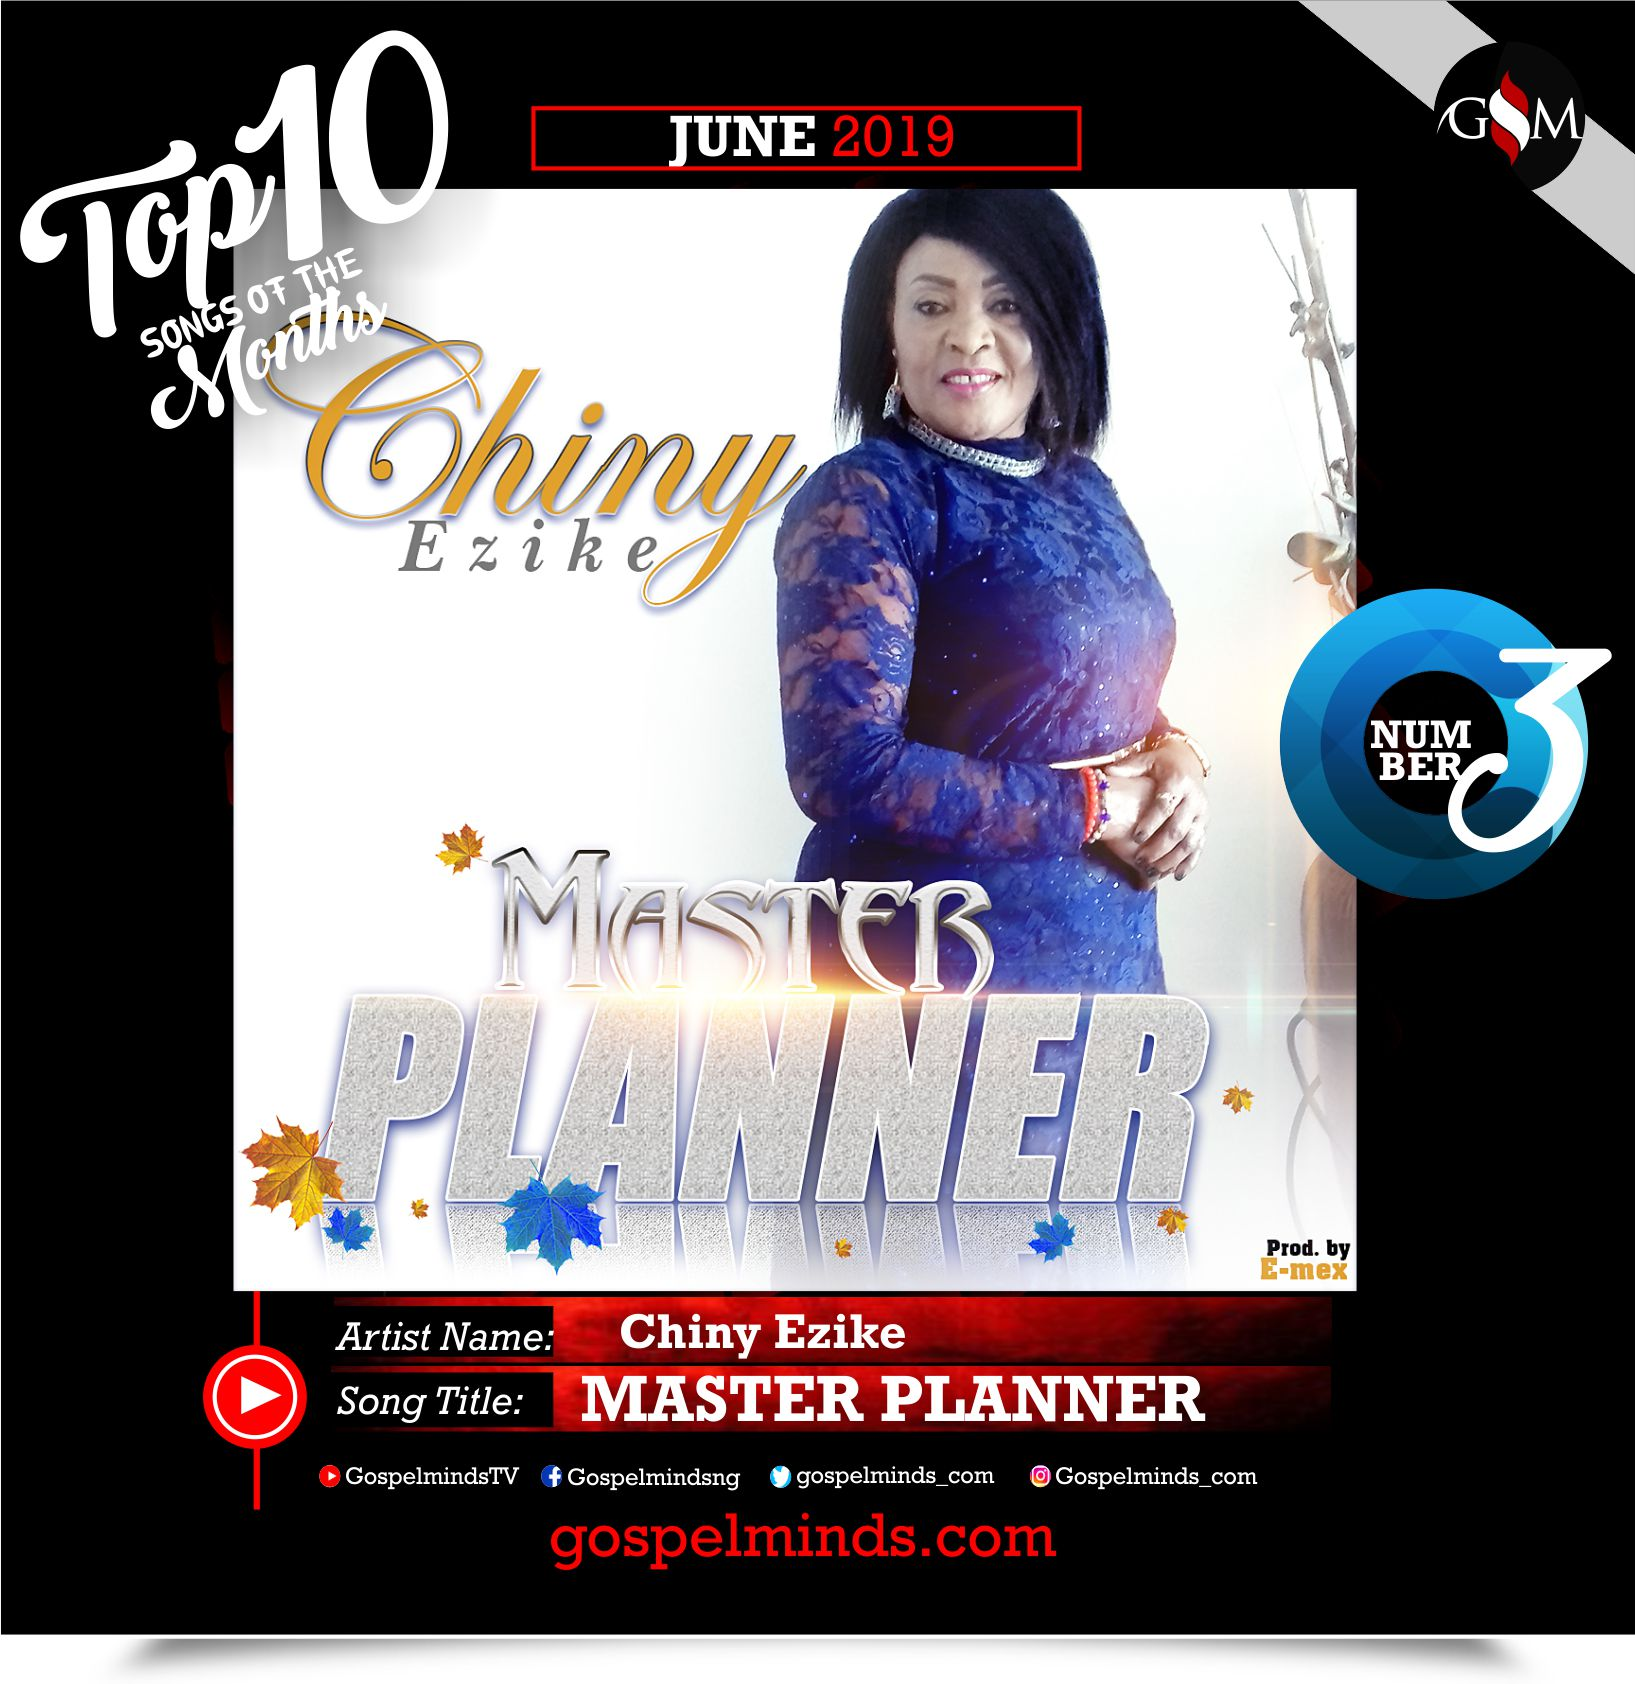 Top 10 Gospel Songs of The Month - June 2019 GospelMinds Ent. (Chiny Ezike - Master Planner)